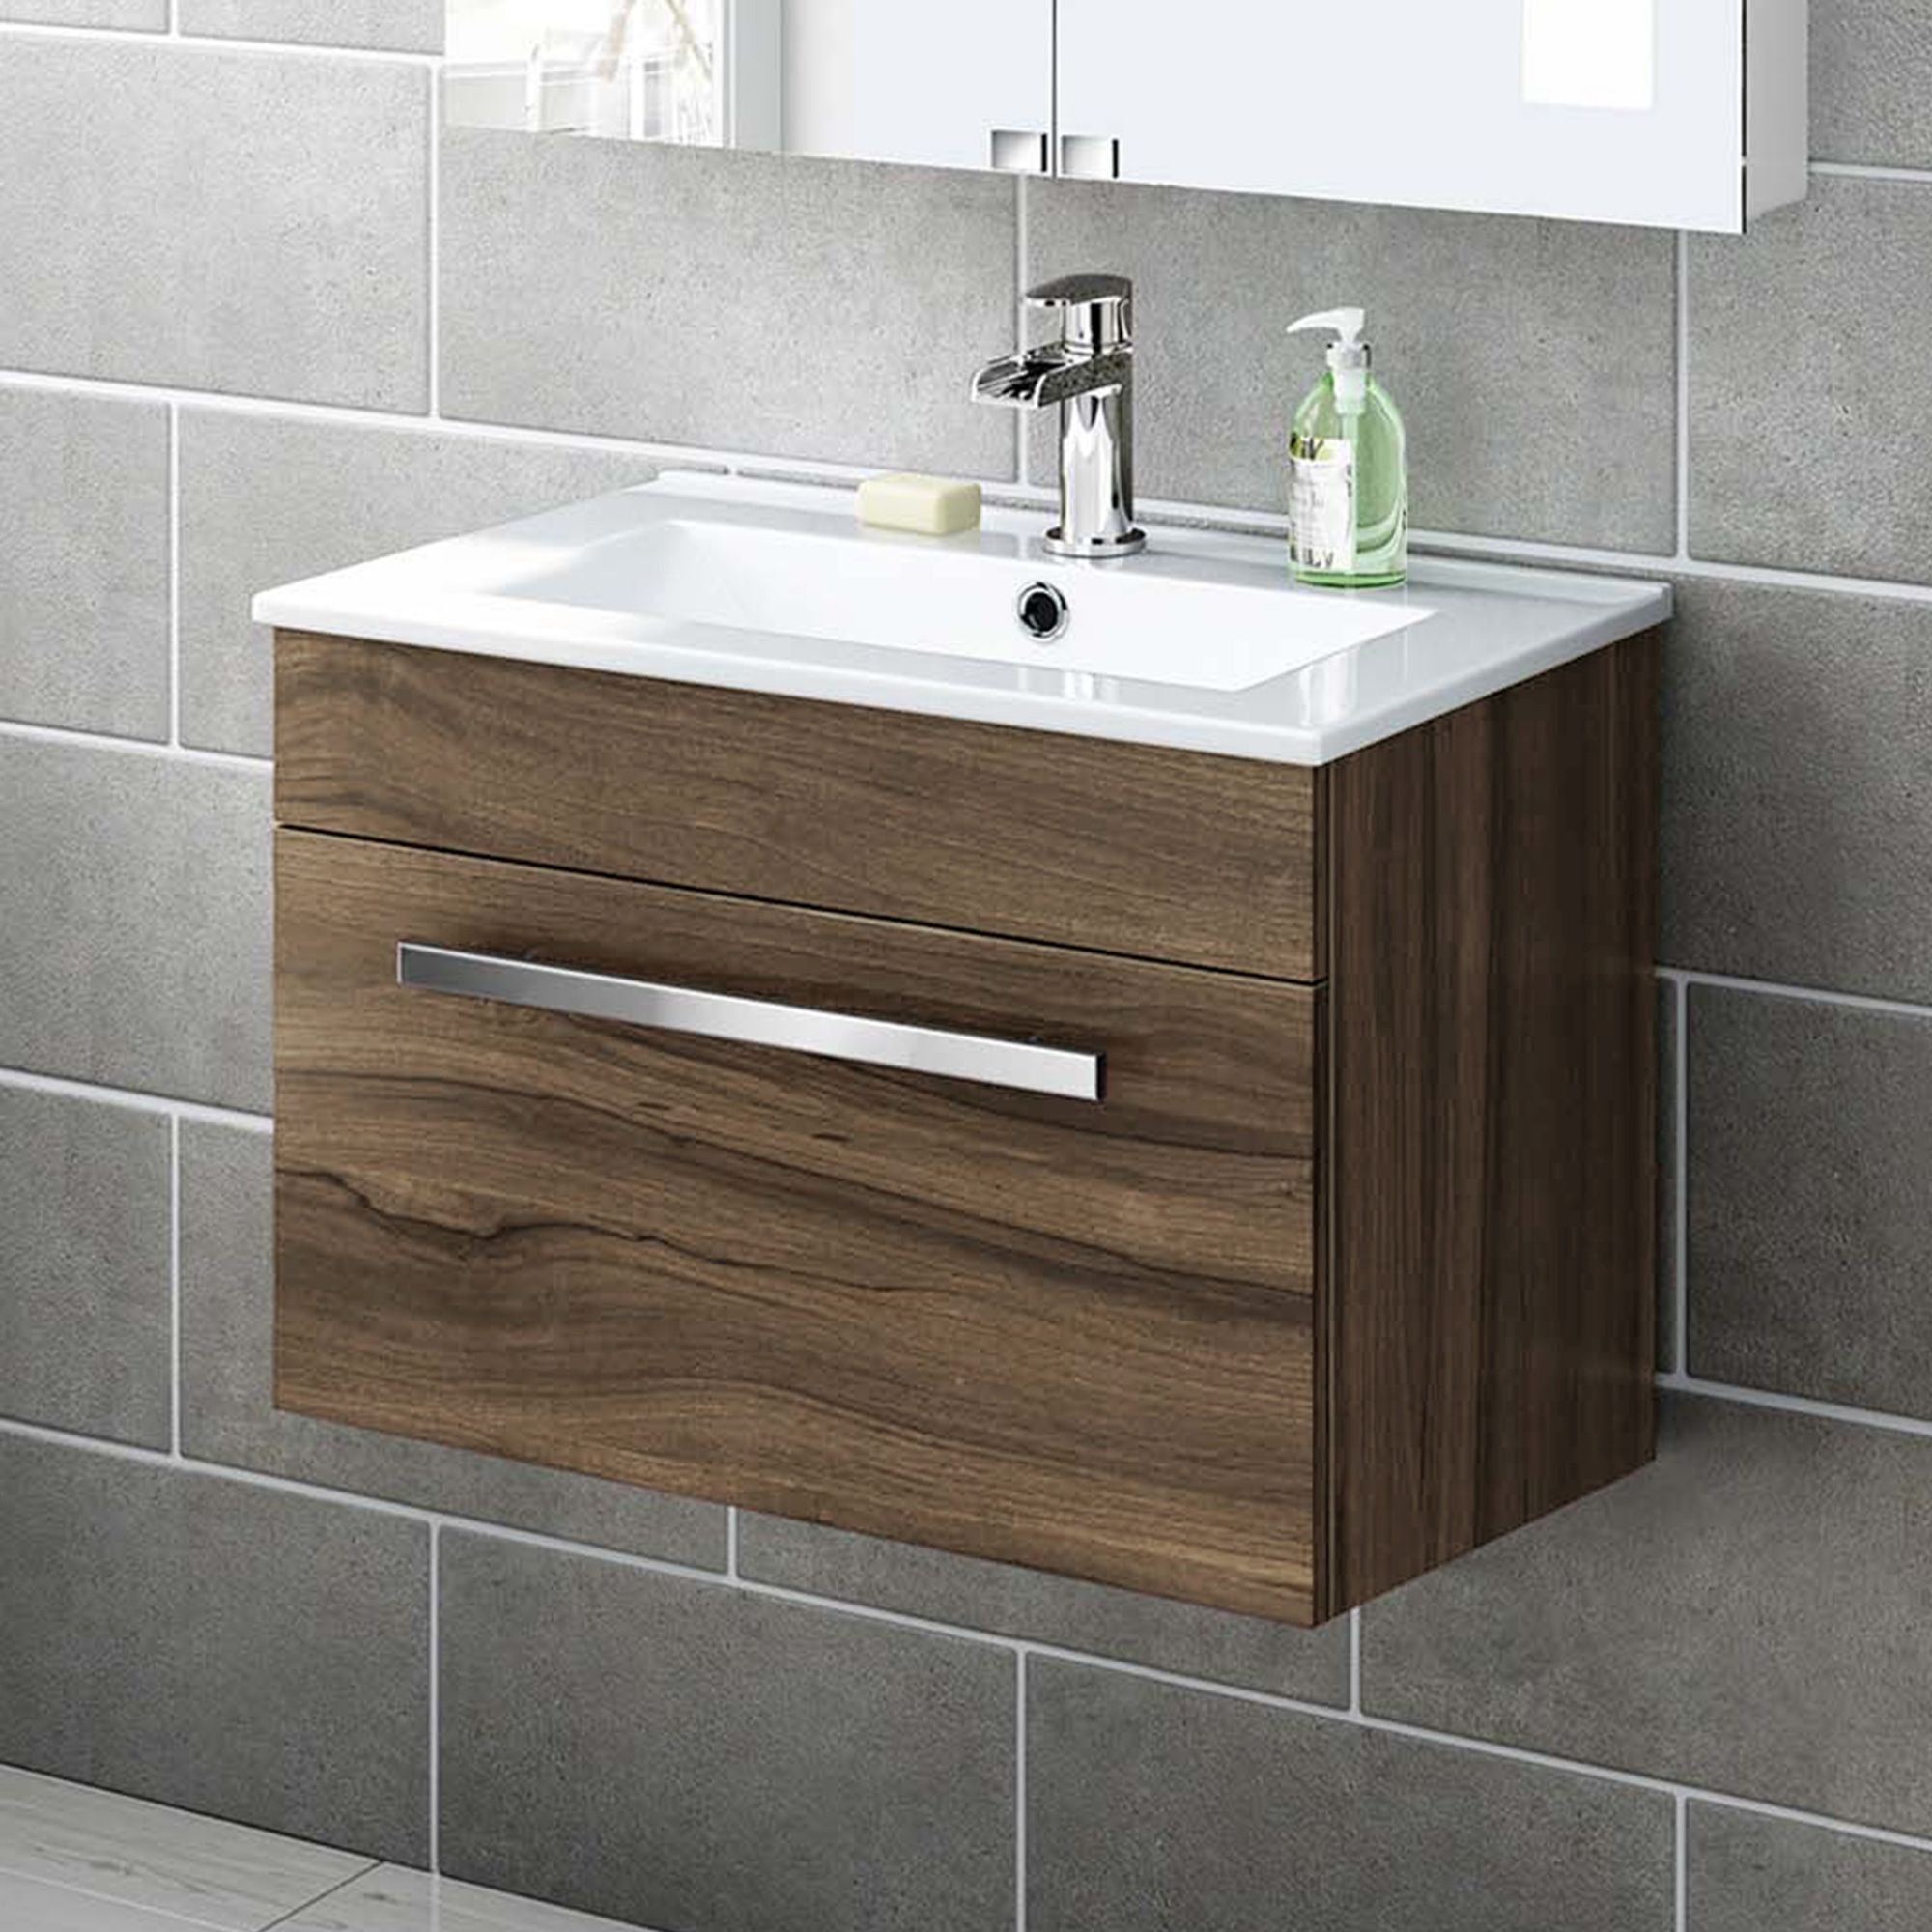 600mm Avon Walnut Effect Wall Hung Basin Cabinet